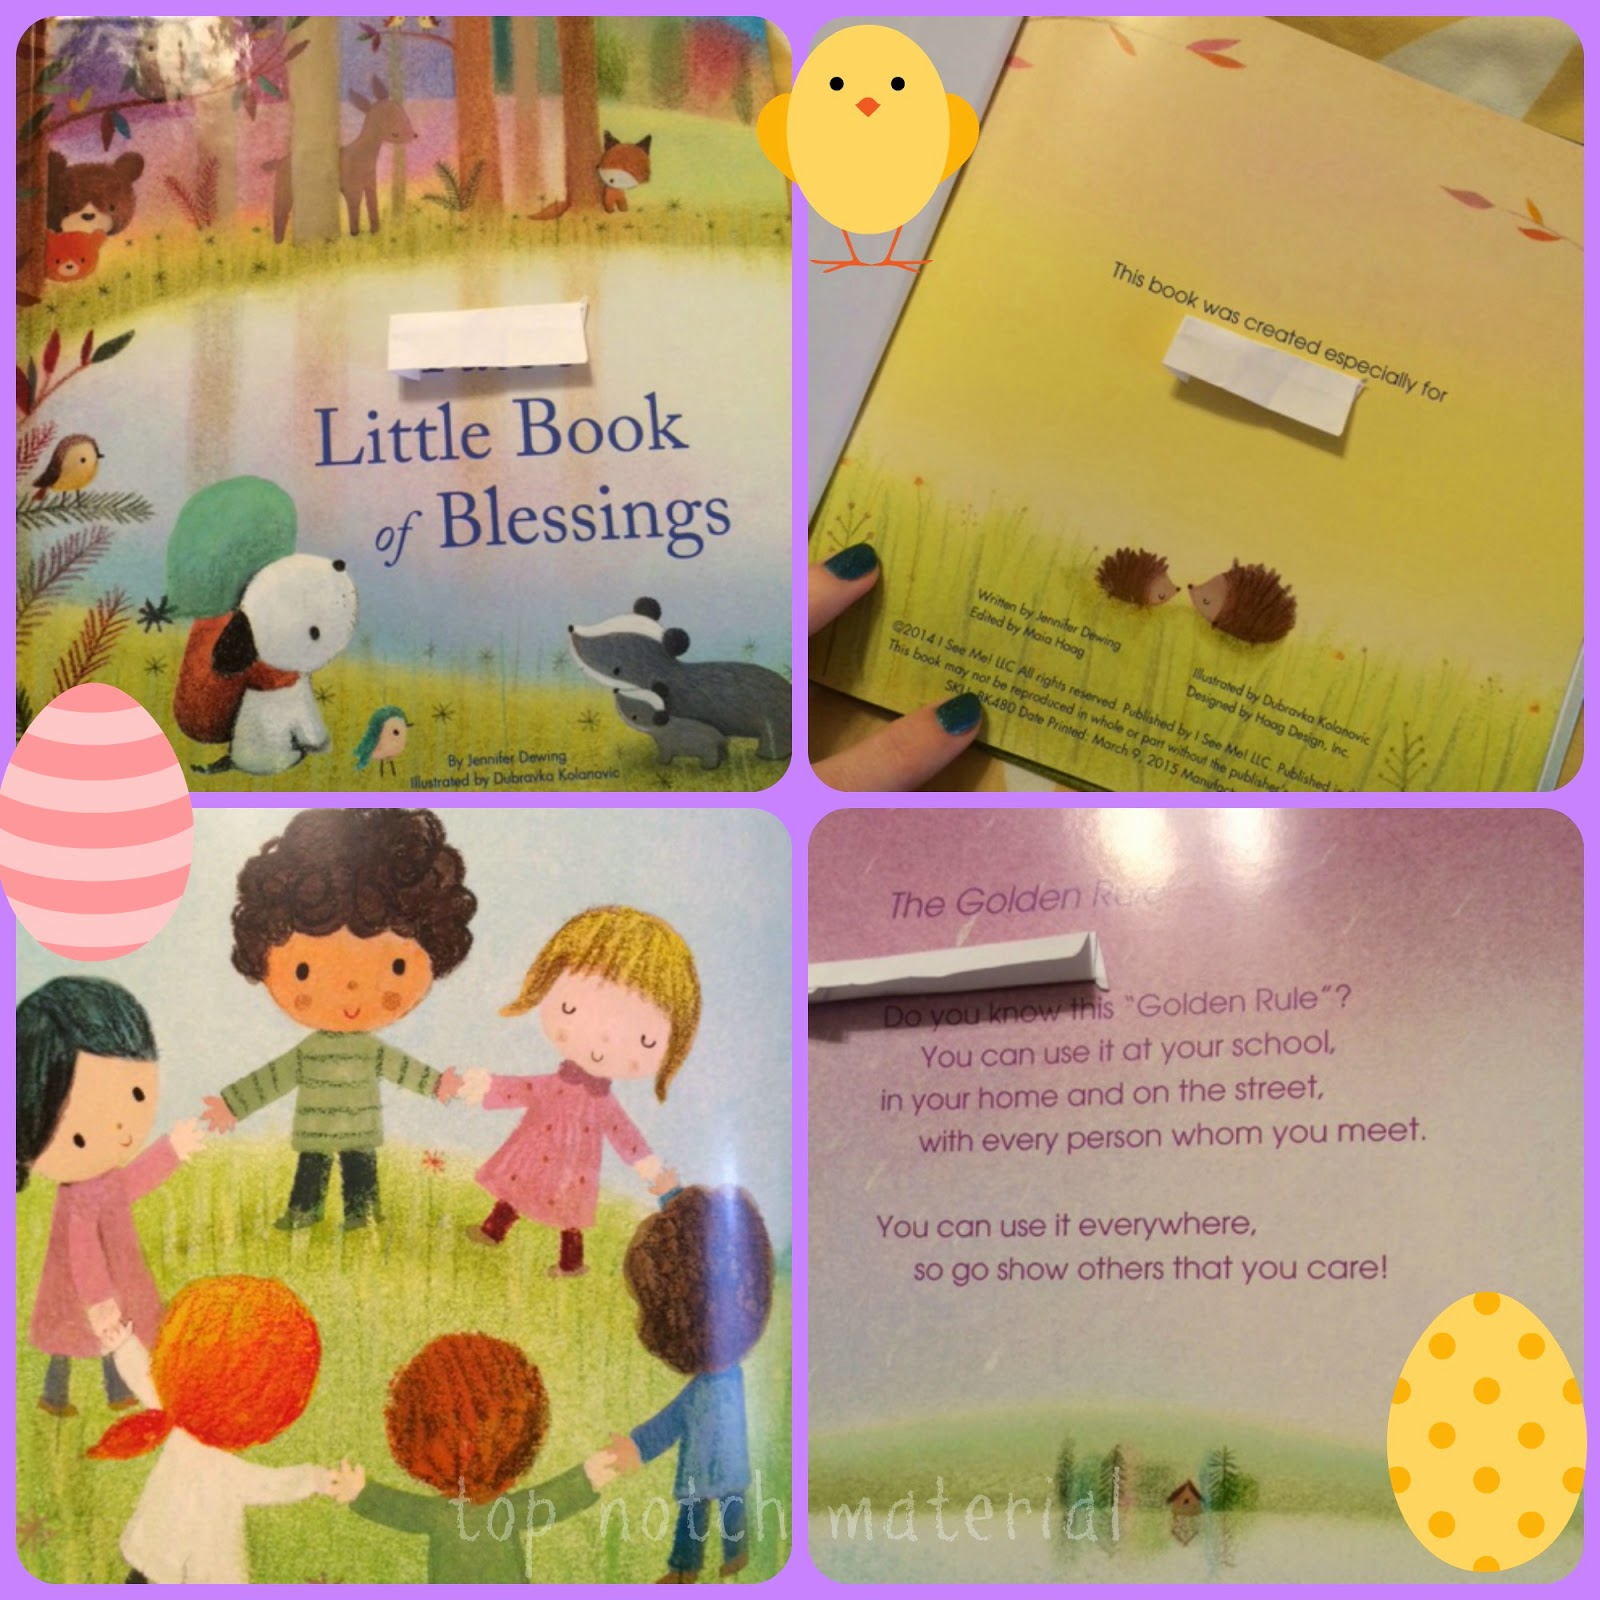 Top notch material i see me offers the best personalized easter paige i picked the personalized book my little book of blessings personalized book for my little man this sing songy book talks about all the blessing negle Choice Image